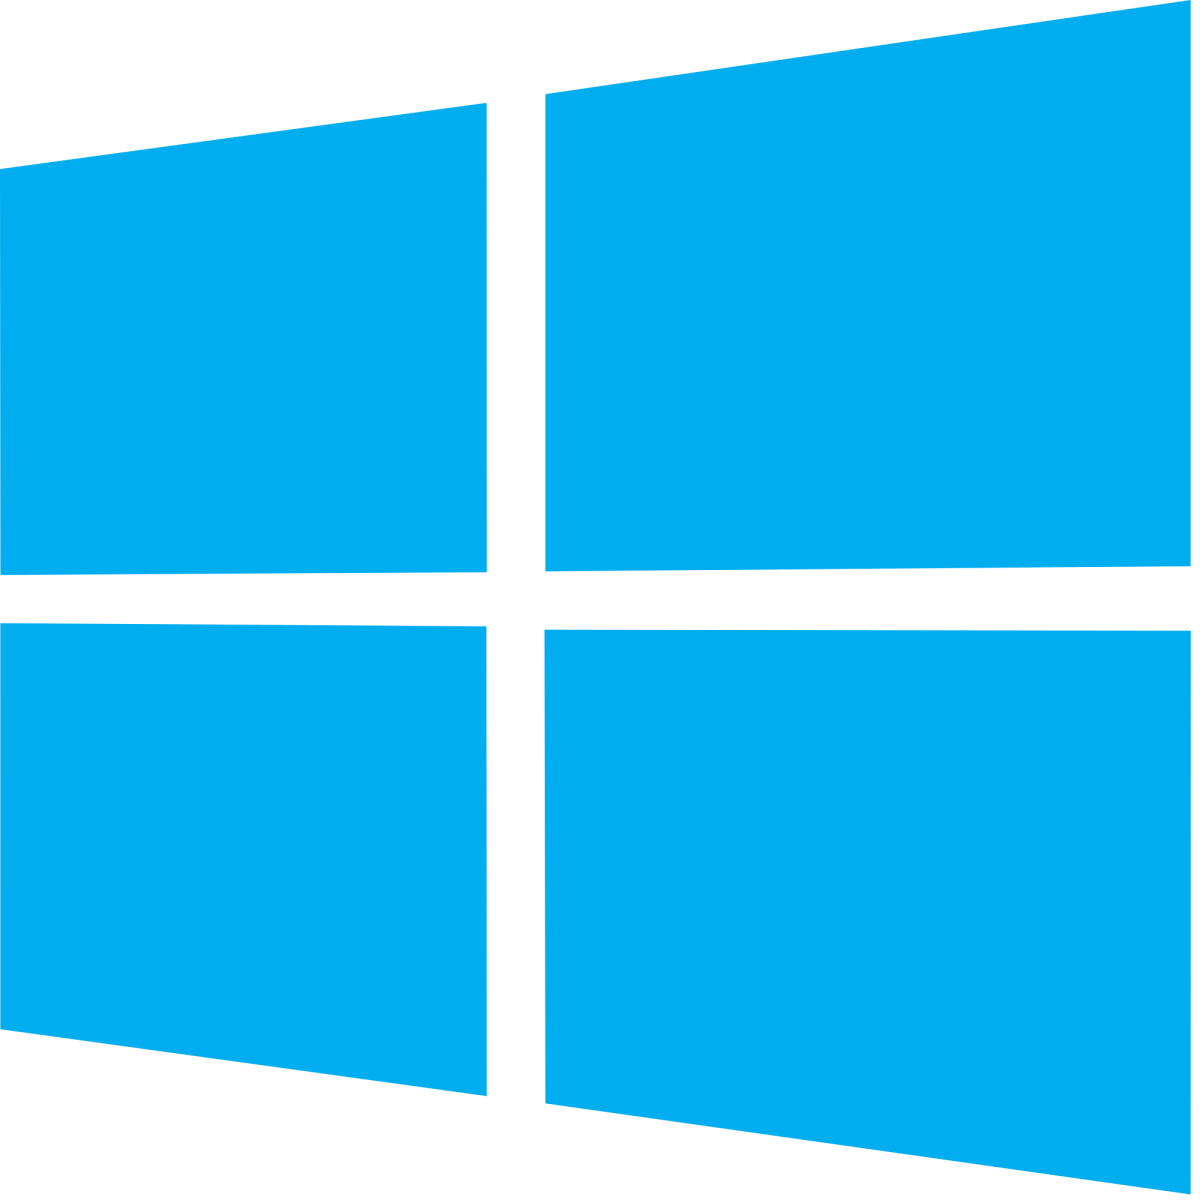 Better Gaming in Windows 10 coming soon – Merging Xbox and PC